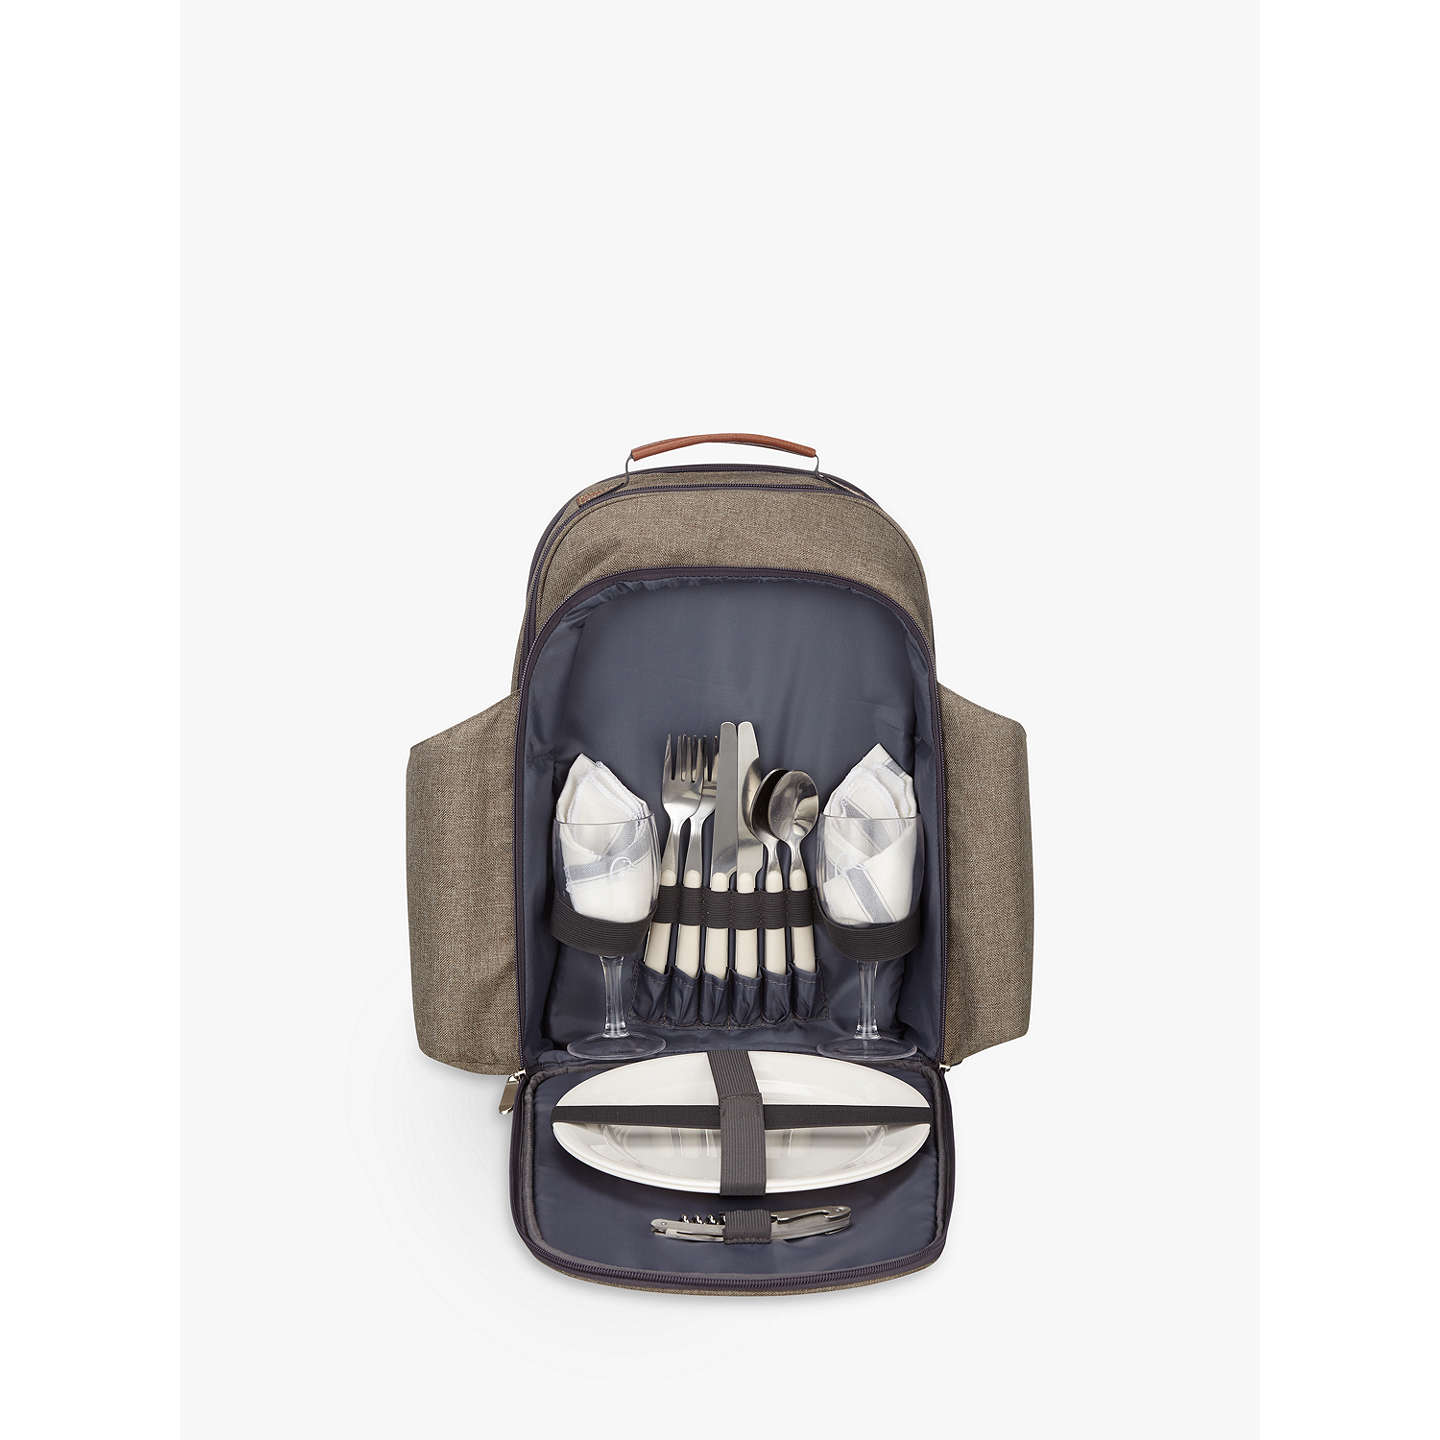 BuyCroft Collection 2 Person Backpack Picnic Hamper and Cooler Bag Online at johnlewis.com